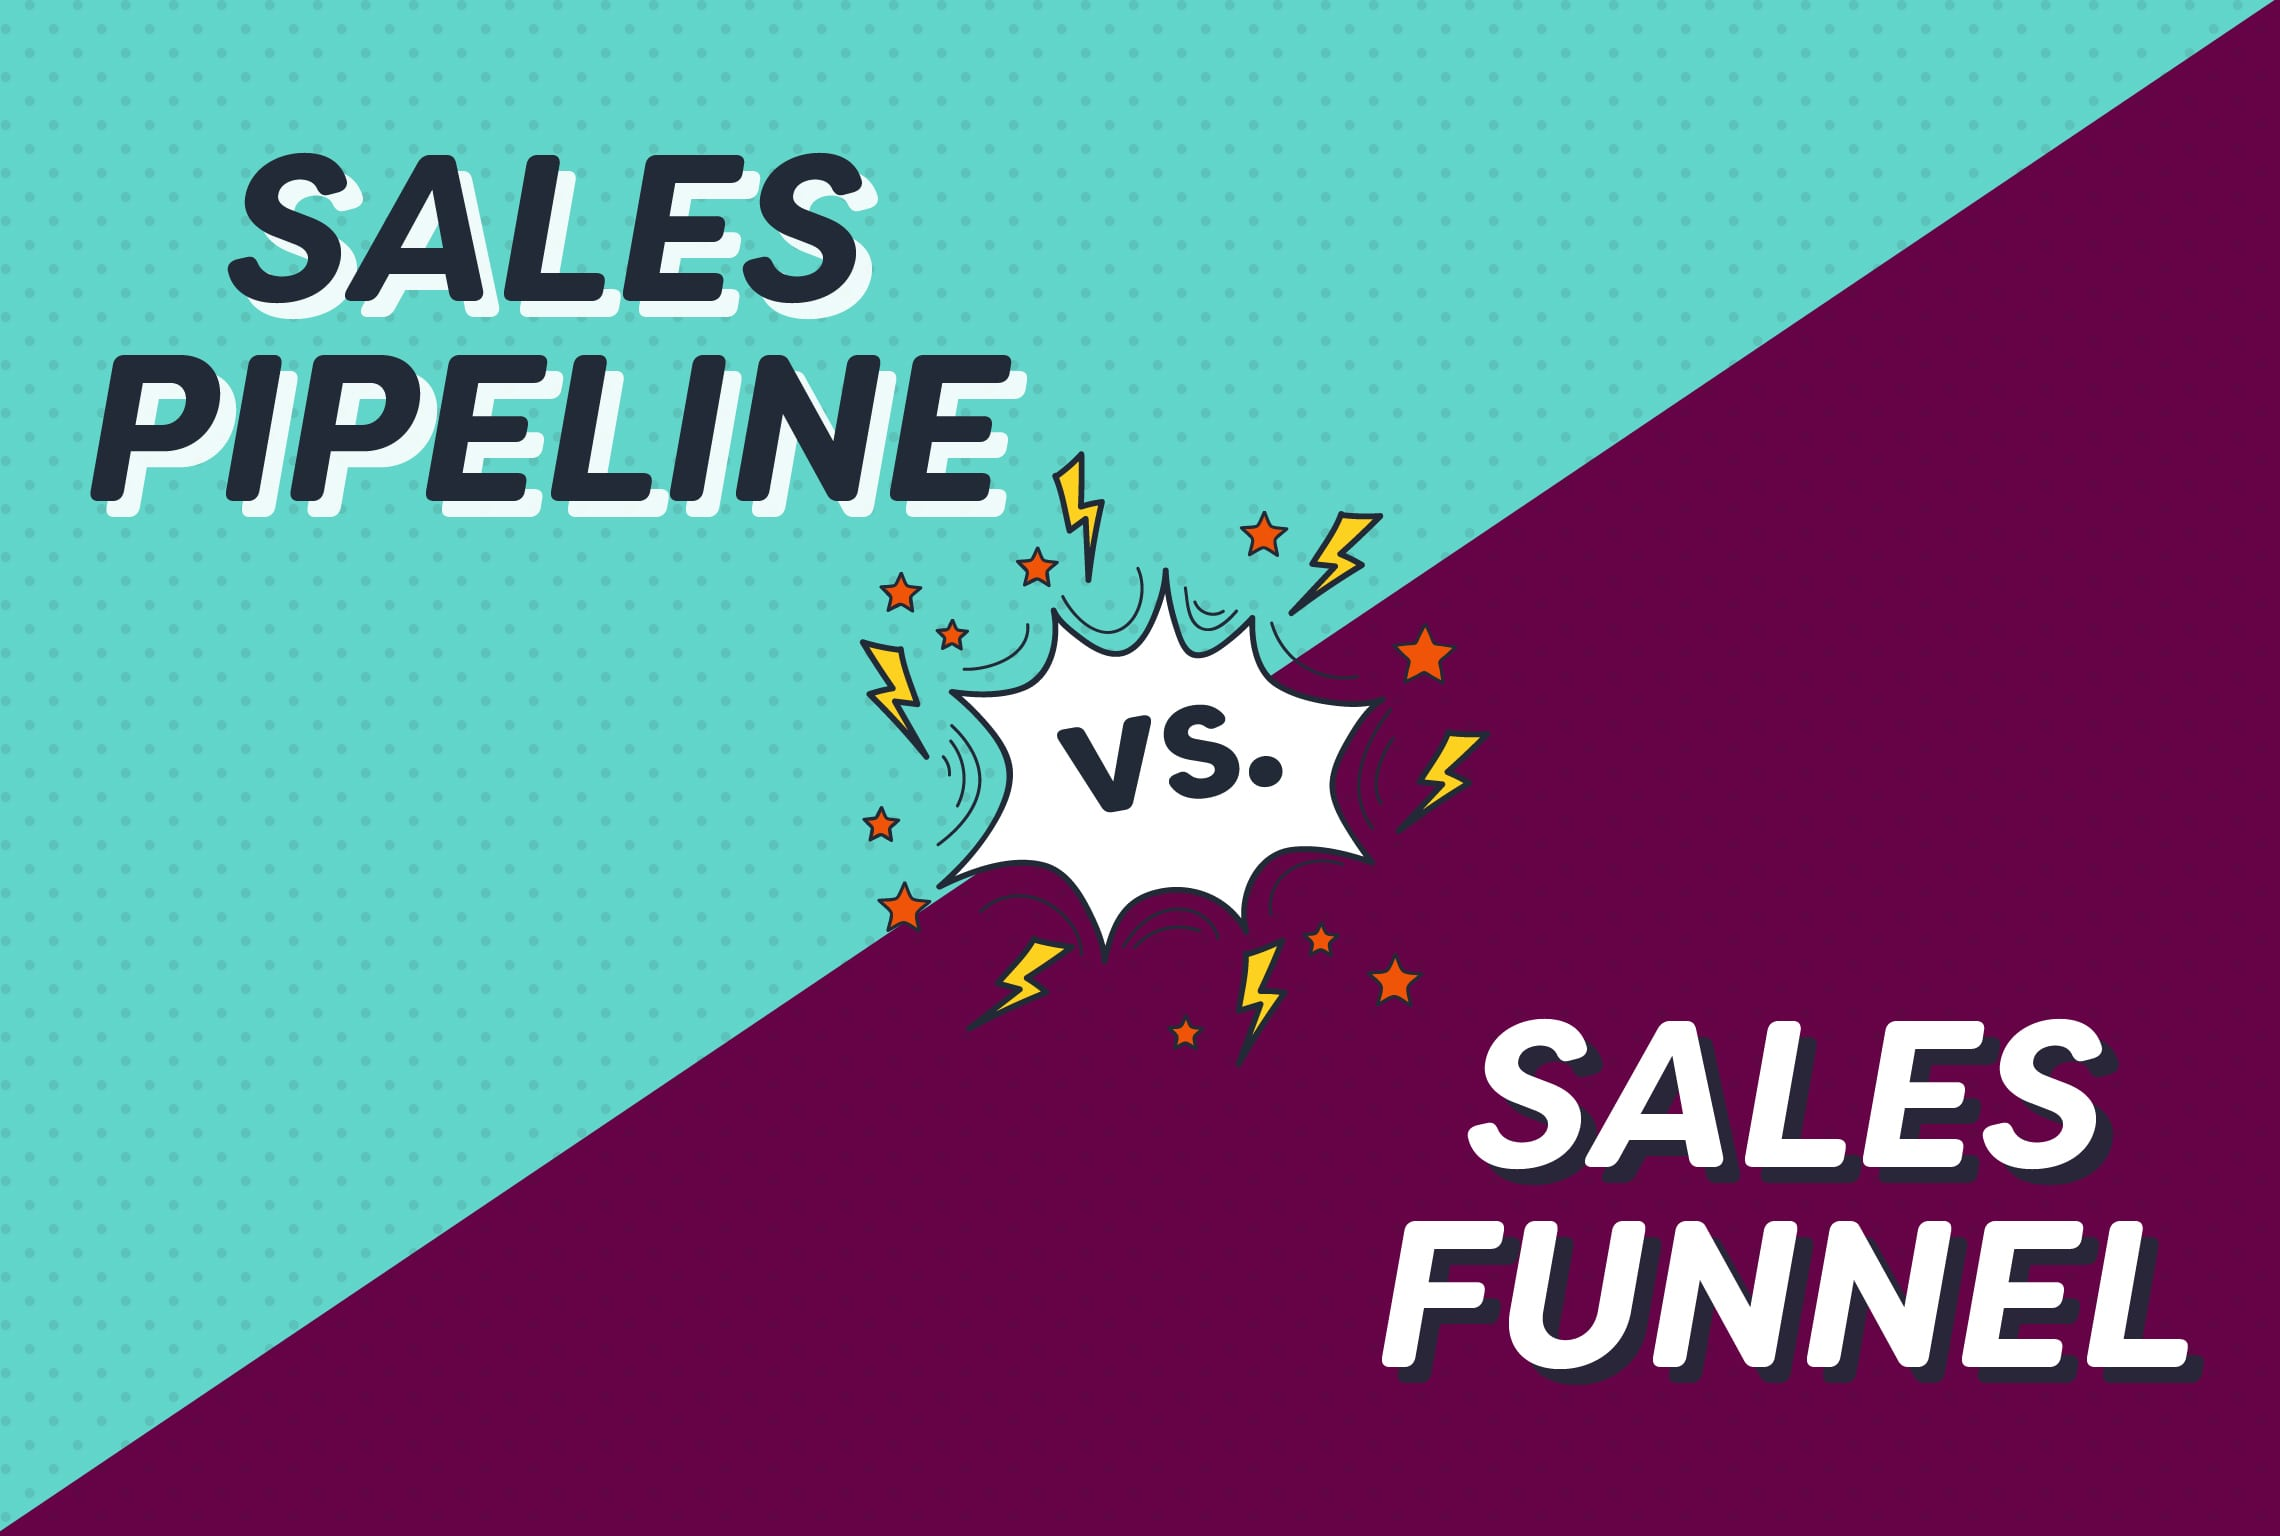 Do you know the difference between a sales pipeline and a sales funnel?